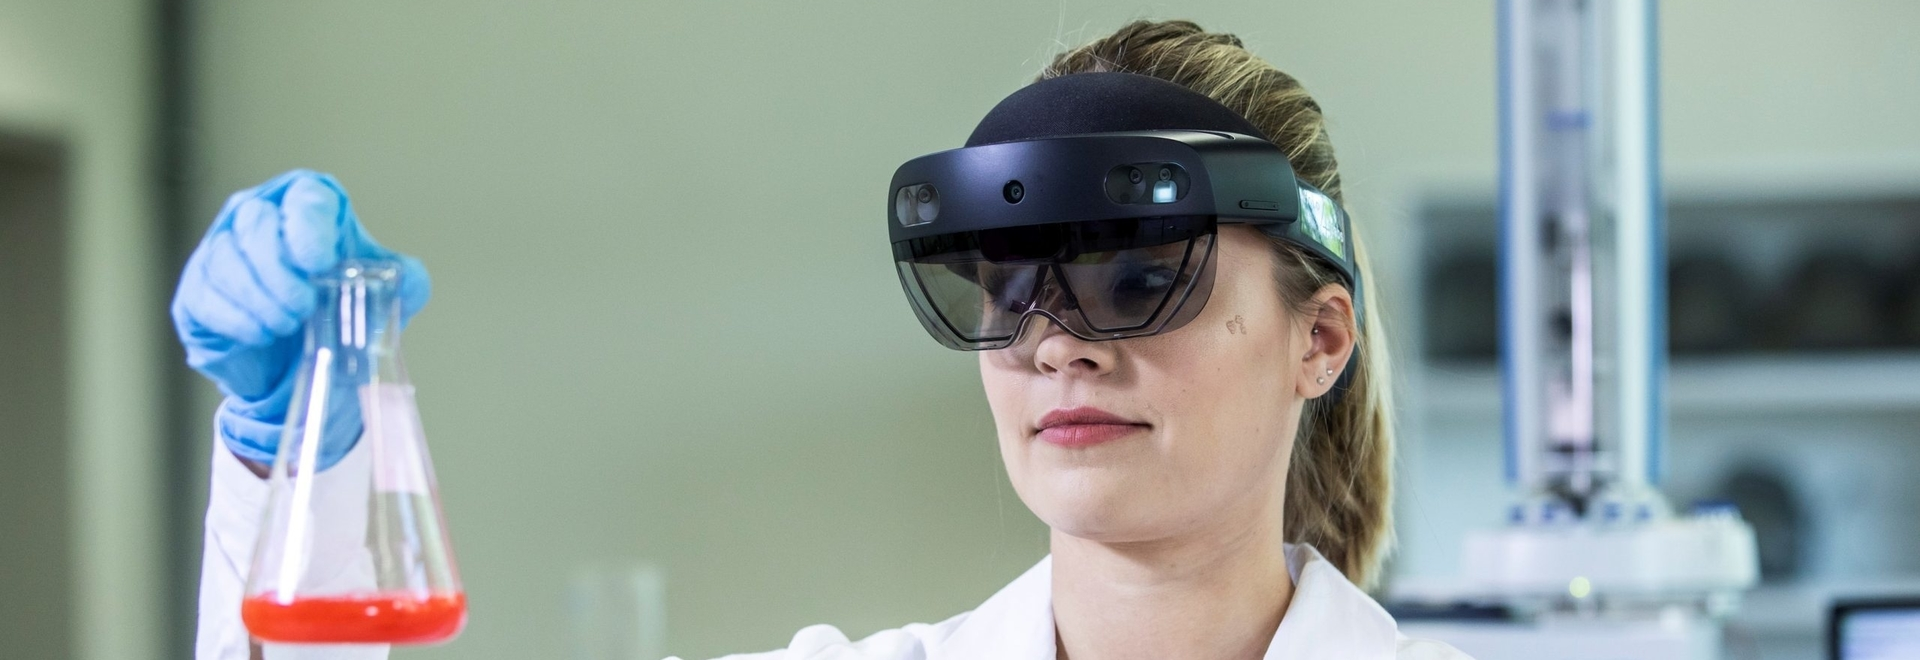 Solution4Labs has created a paperless solution called Holo4Labs for laboratories using Hololens2 by Microsoft.